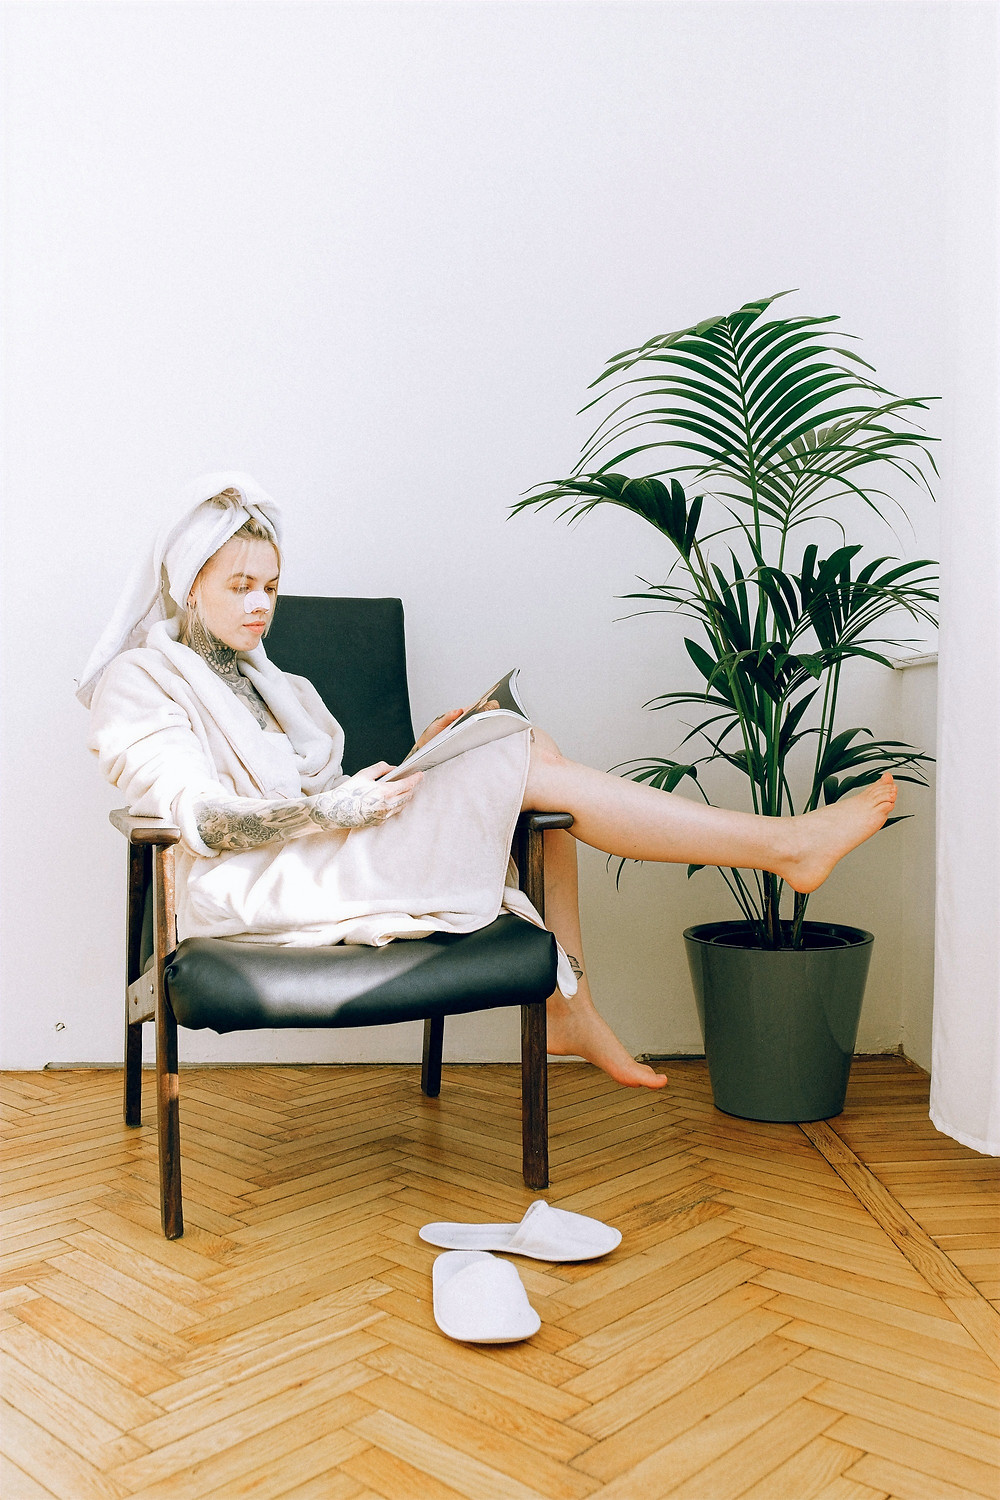 A person wearing a hydrating sheet mask and robe reclines on an armchair in a minimalist room while reading a magazine..